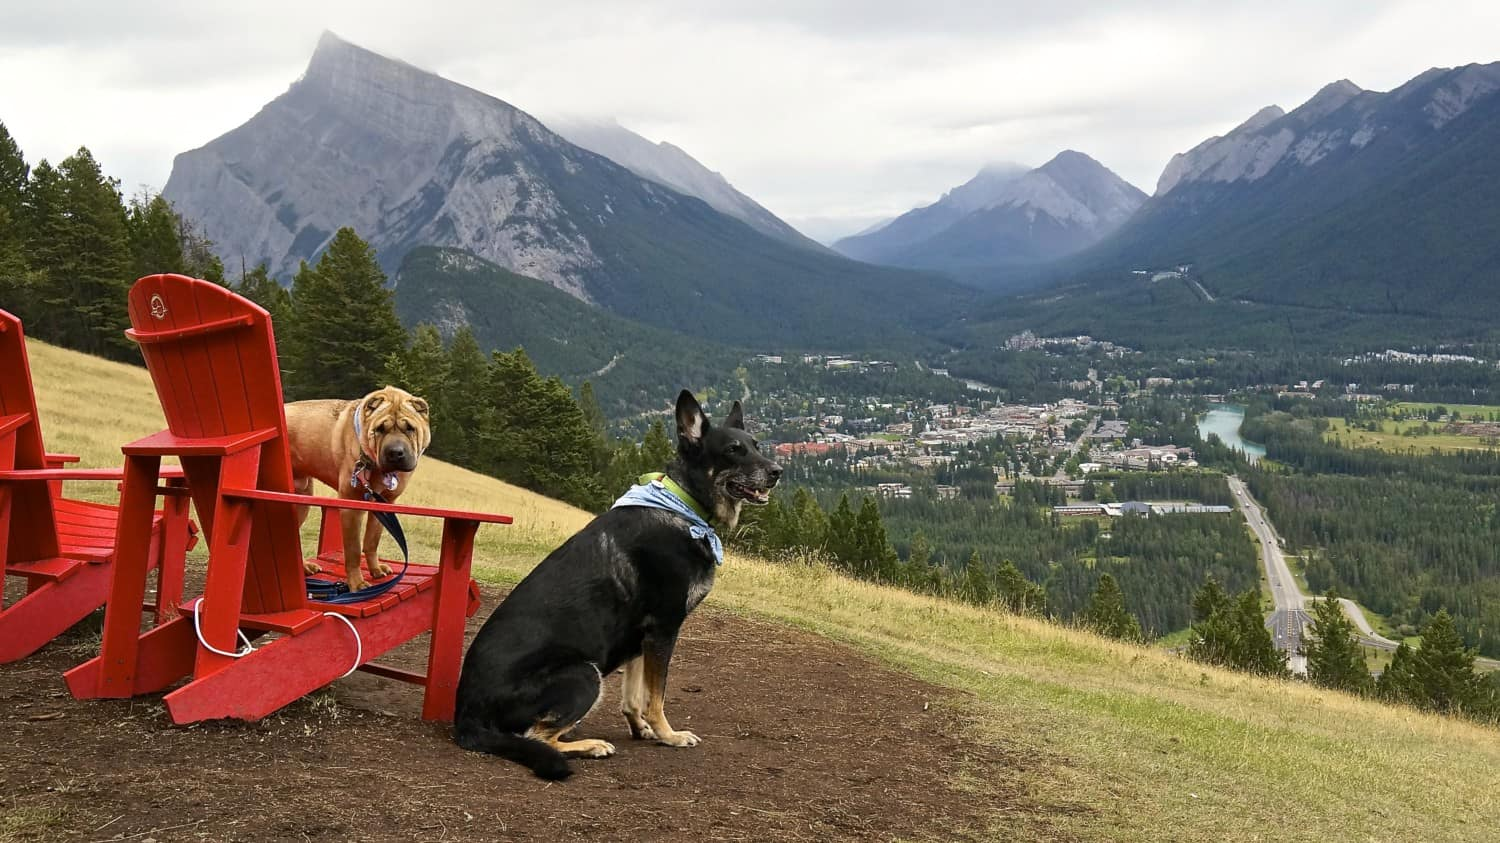 Dog Friendly Things To Do In Banff: Part 2